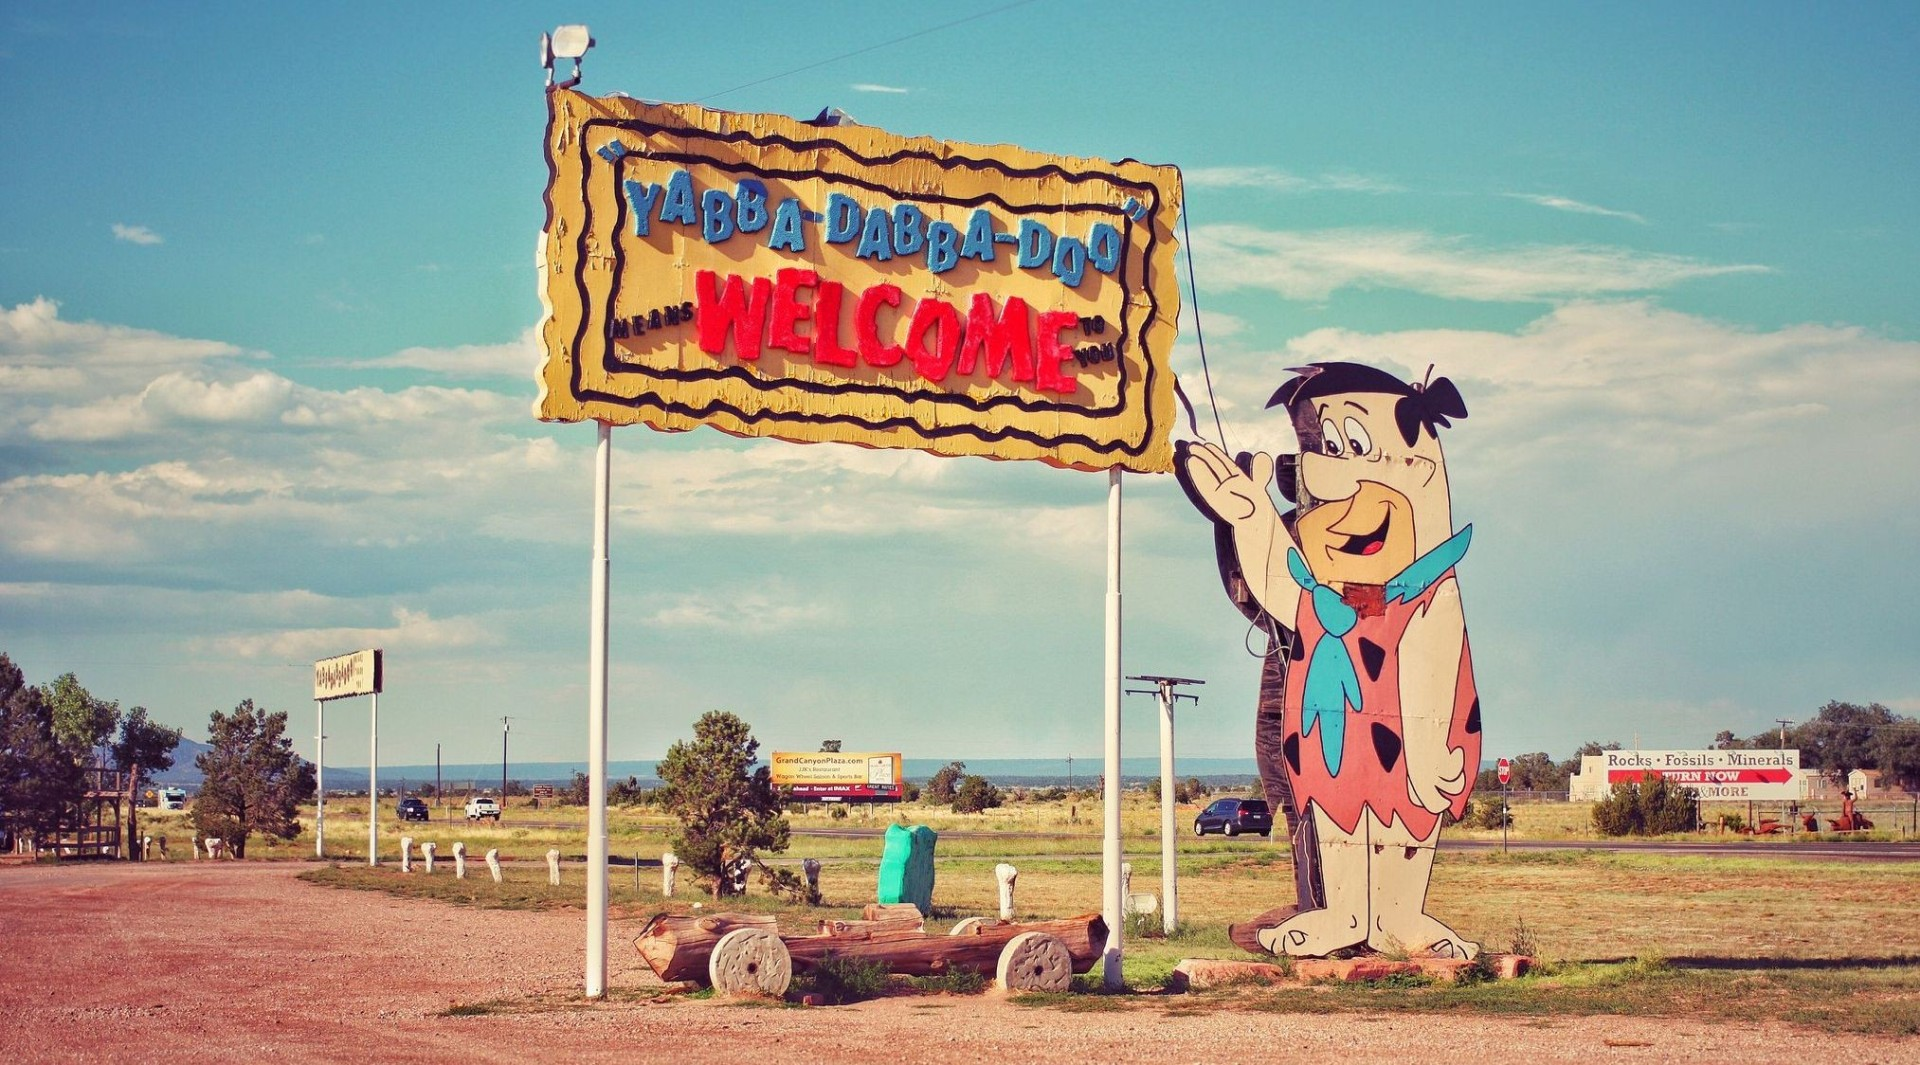 Gay old closing time – Flintstones theme park near the Grand